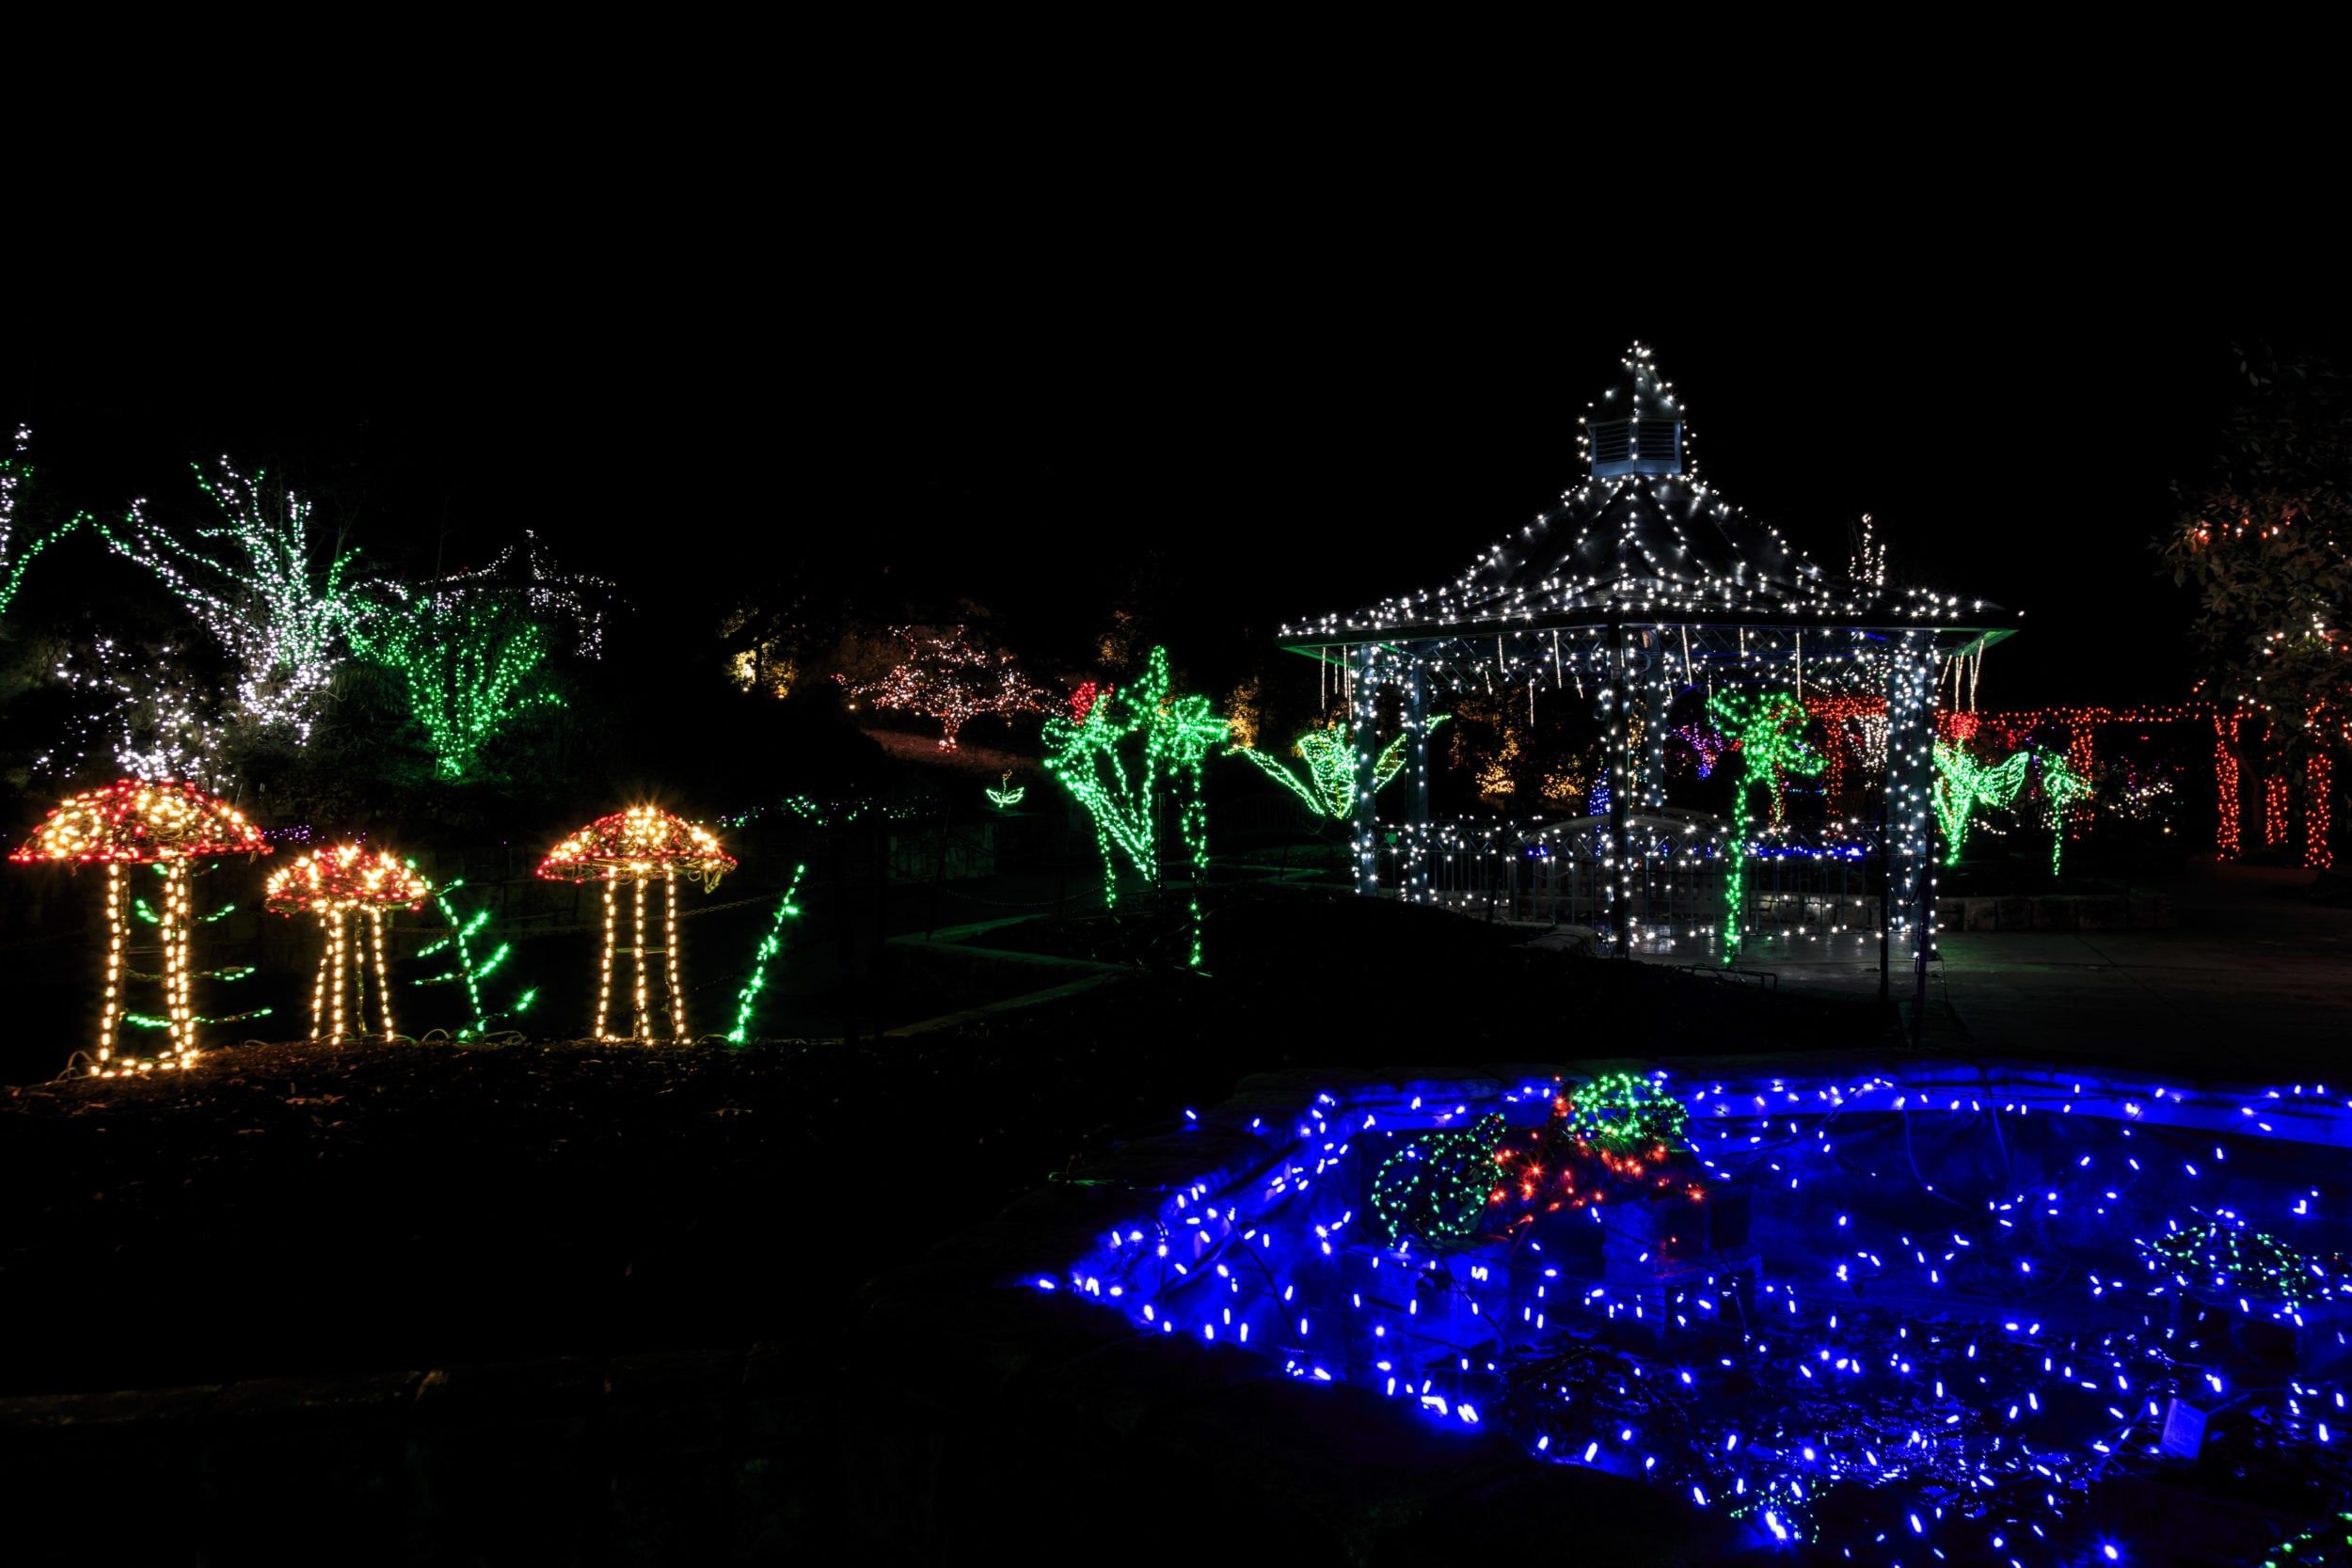 First Timers' Guide to the Garden of Lights at Brookside Gardens ...